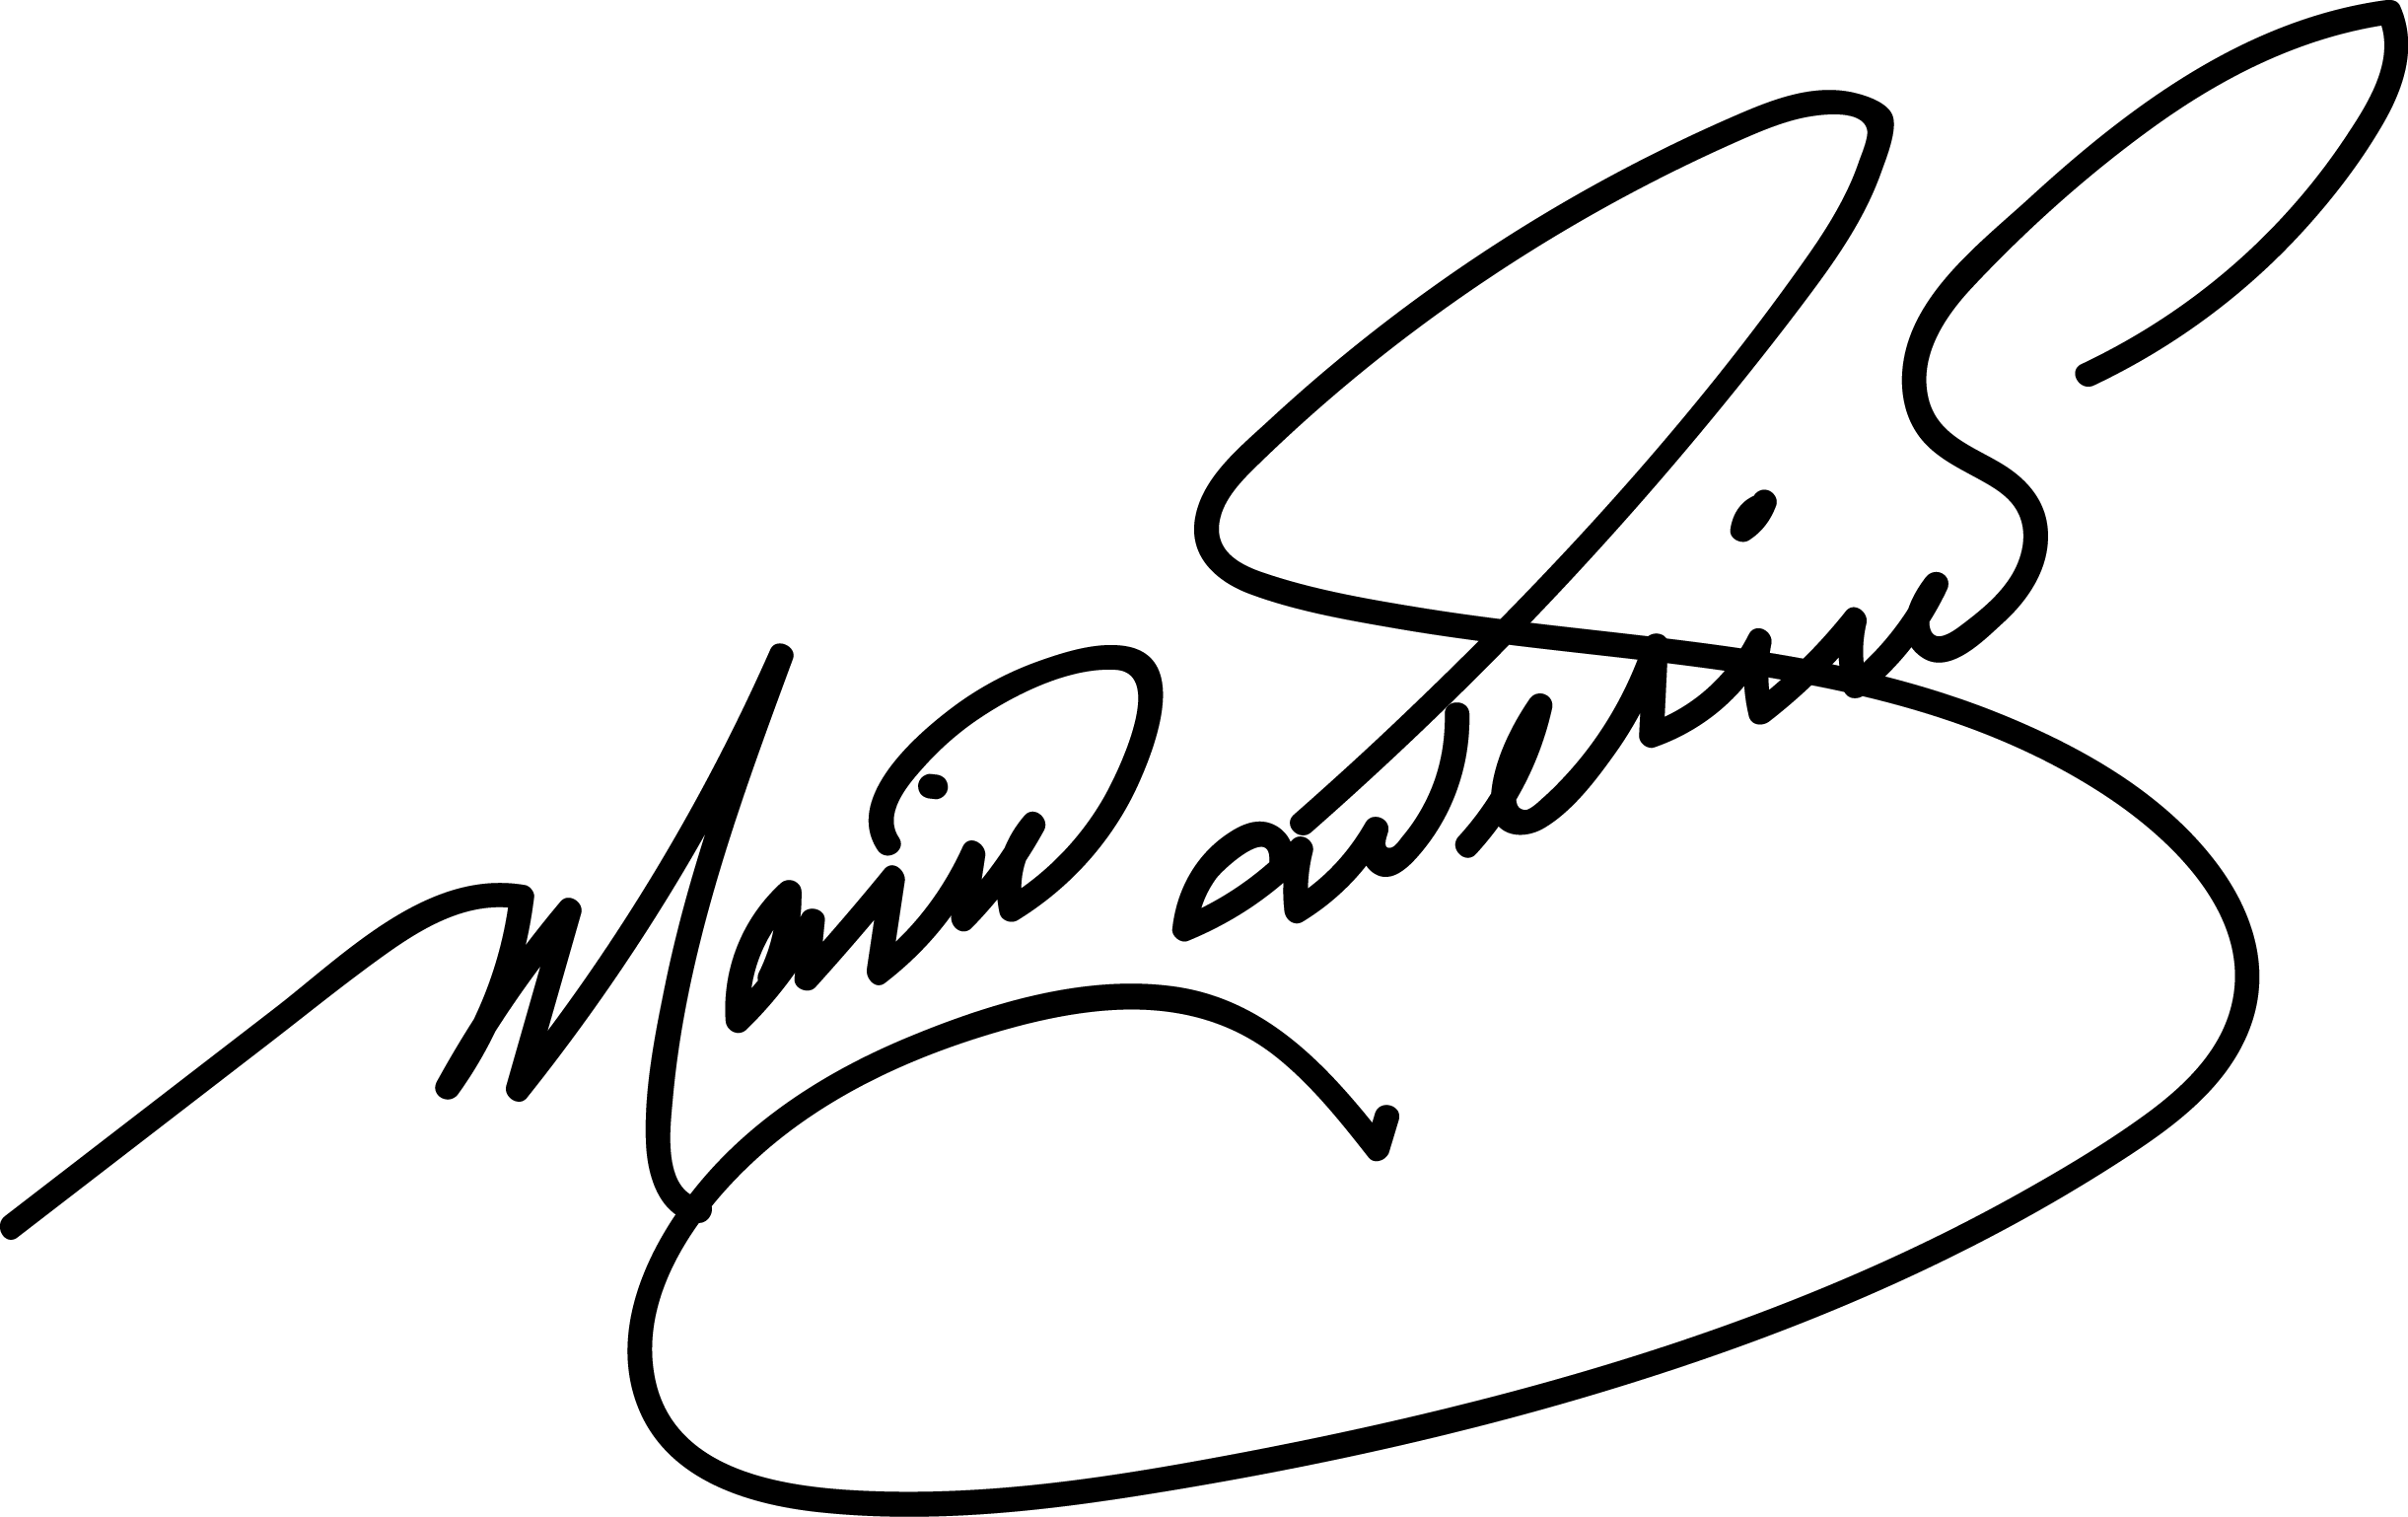 Mario saverino's Signature